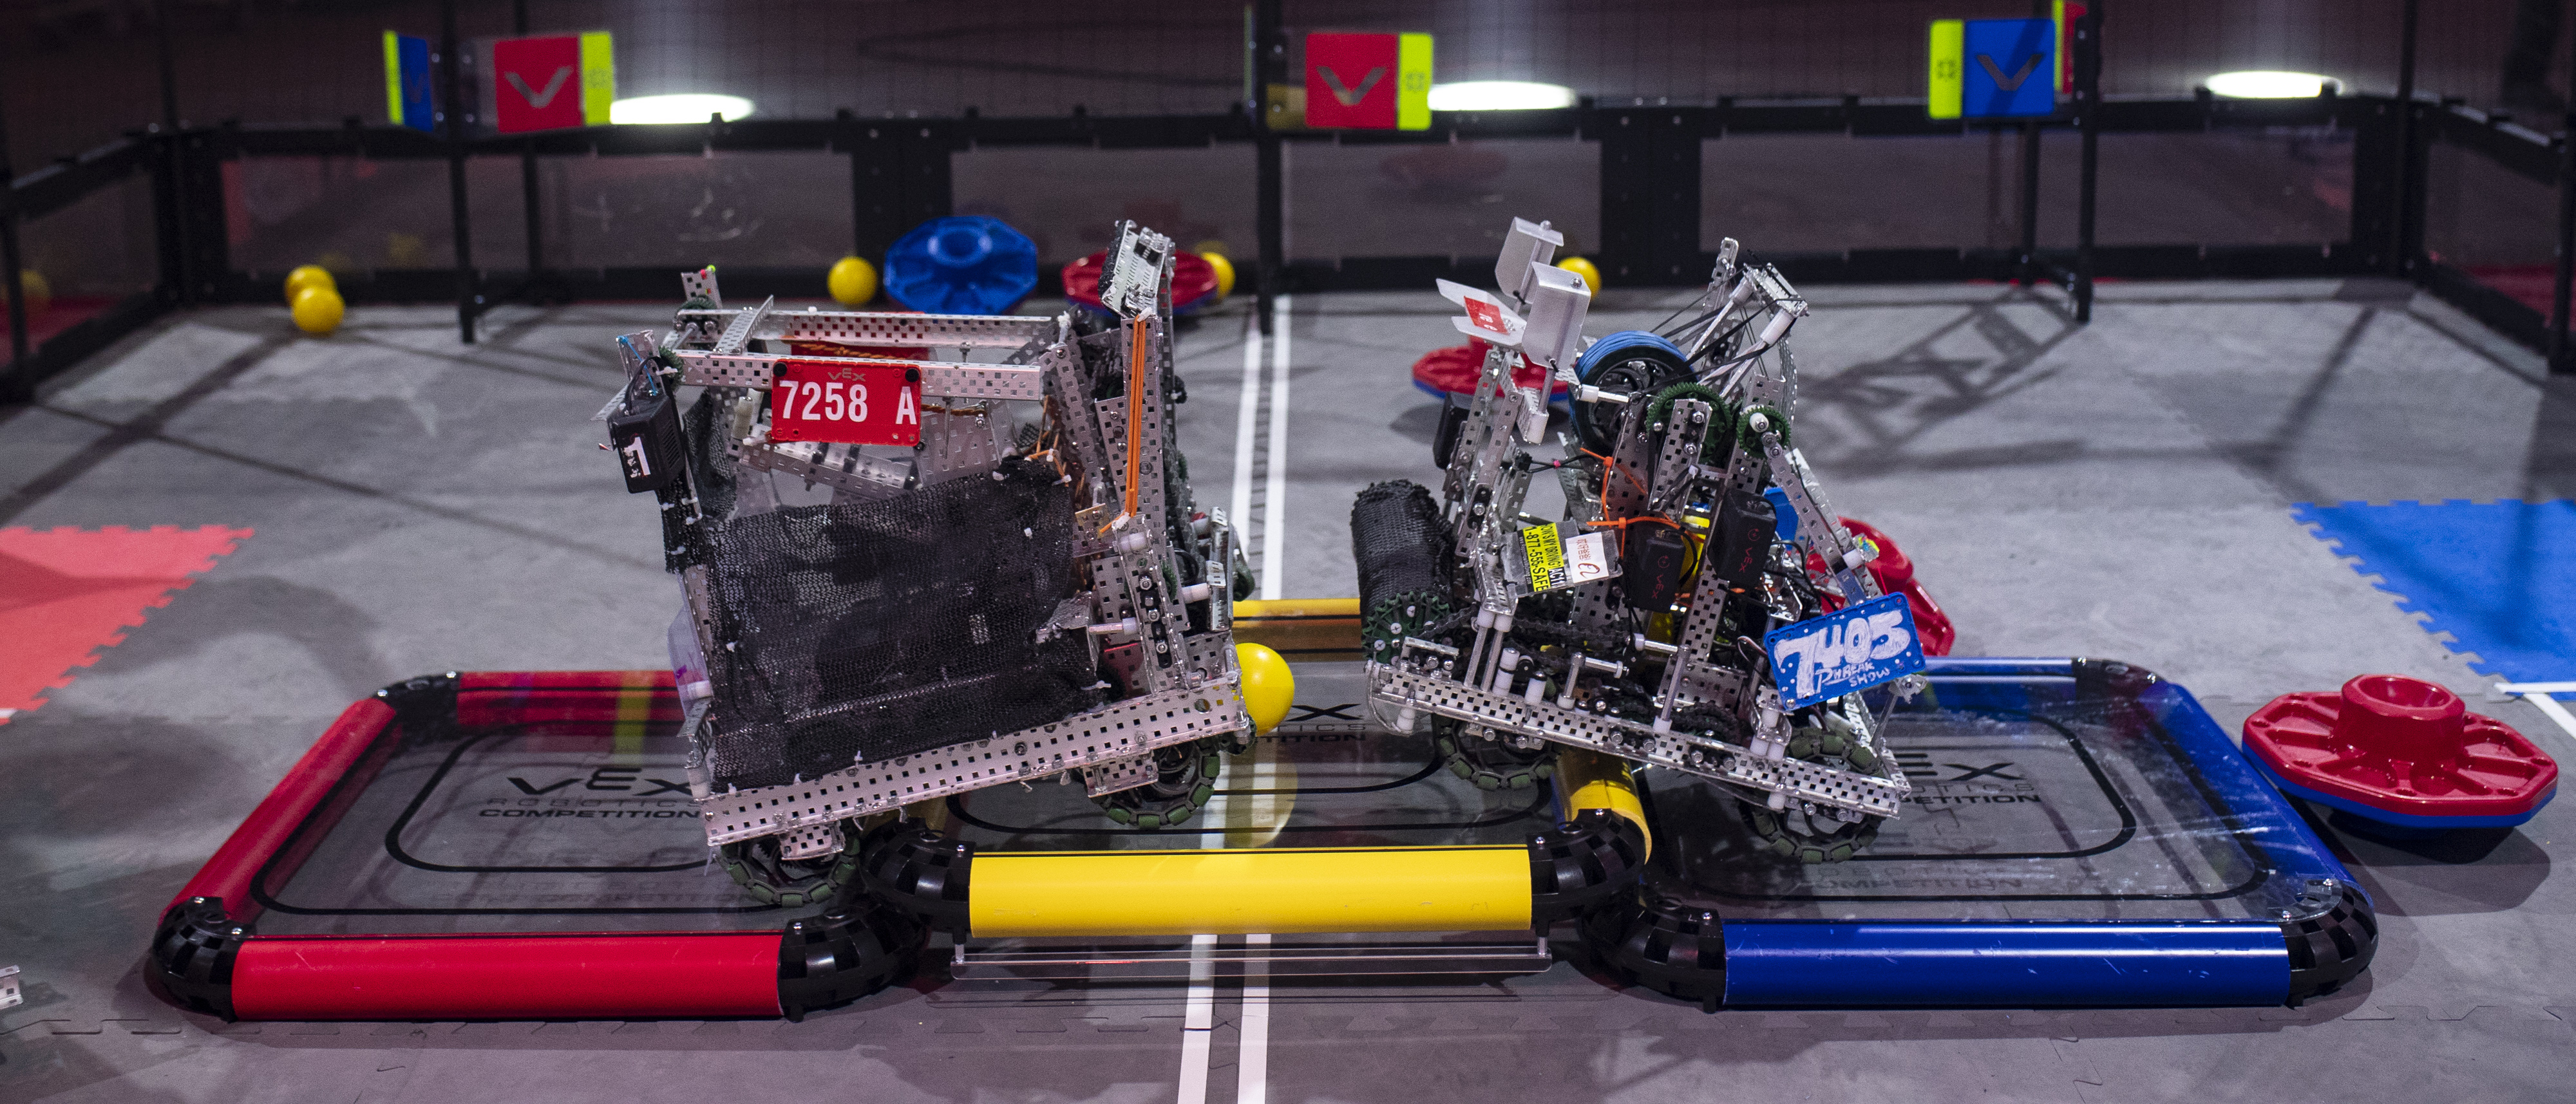 Video for Vex Robotics World Championships Coming to Dallas